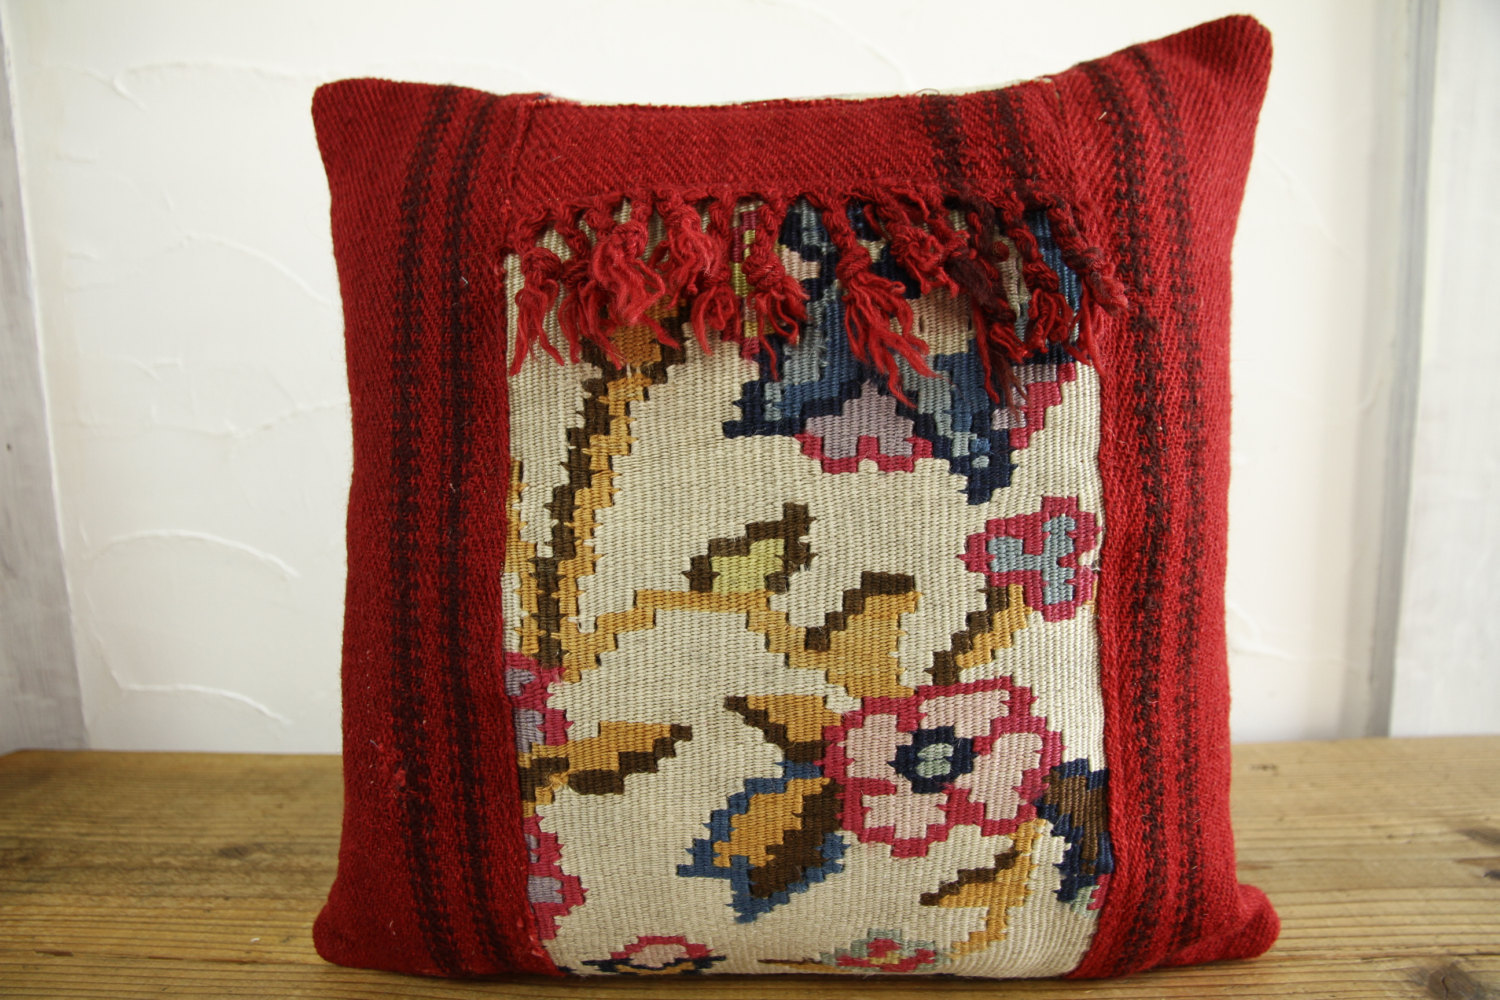 Kilim Pillows |16x16 | Decorative Pillows | 427 | Accent Pillows turkish pillow